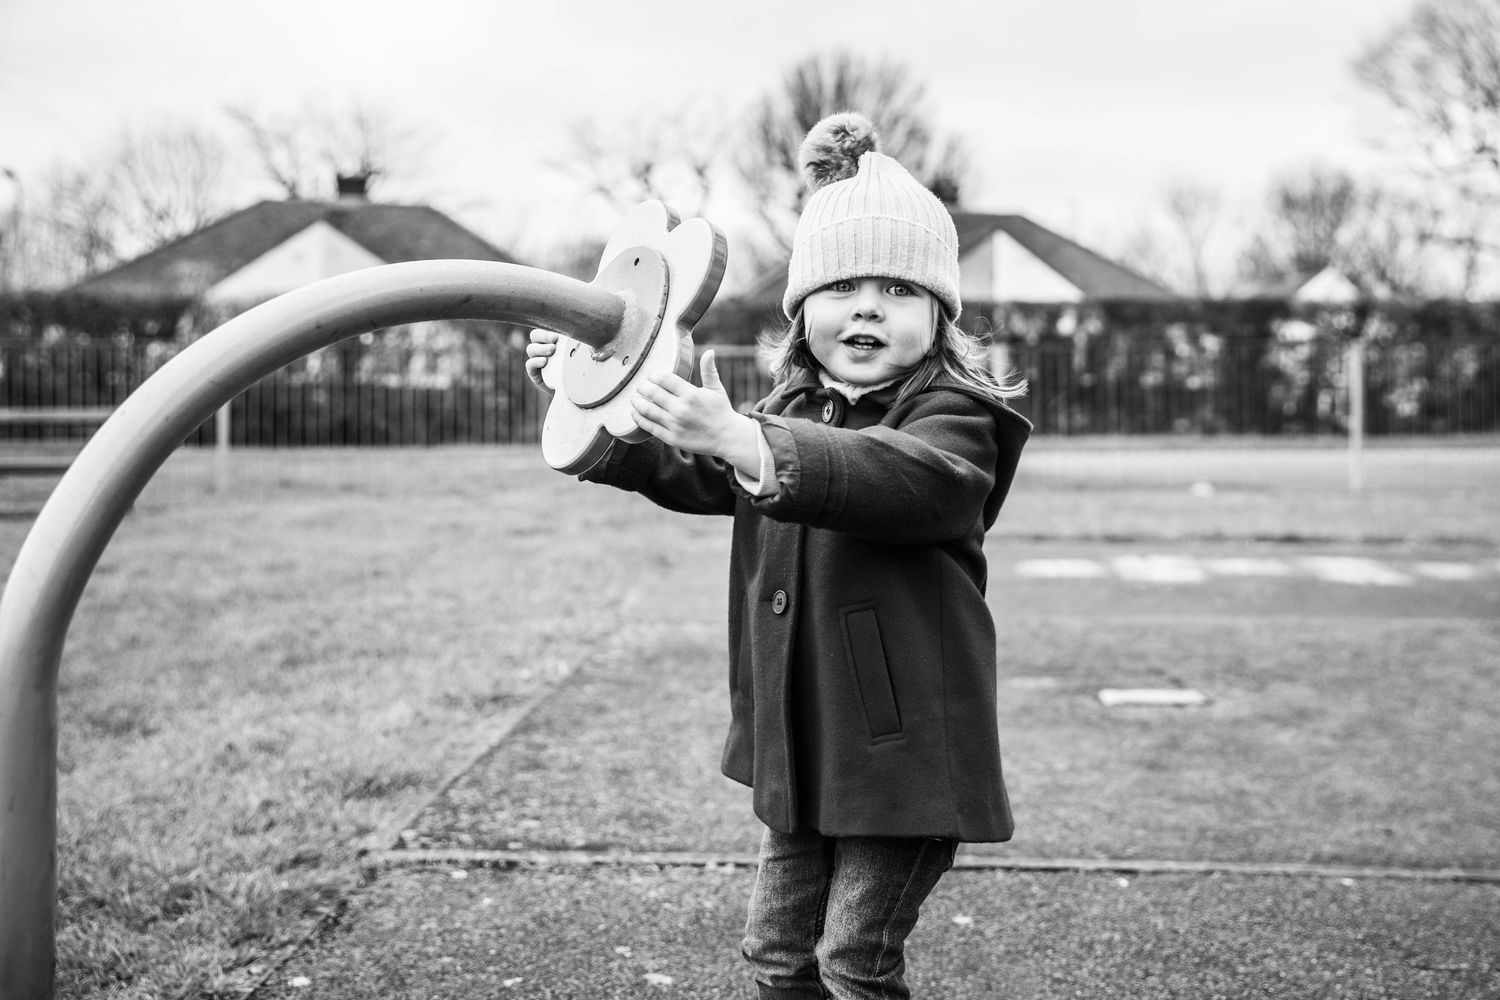 black and white portrait of girl playing in playground